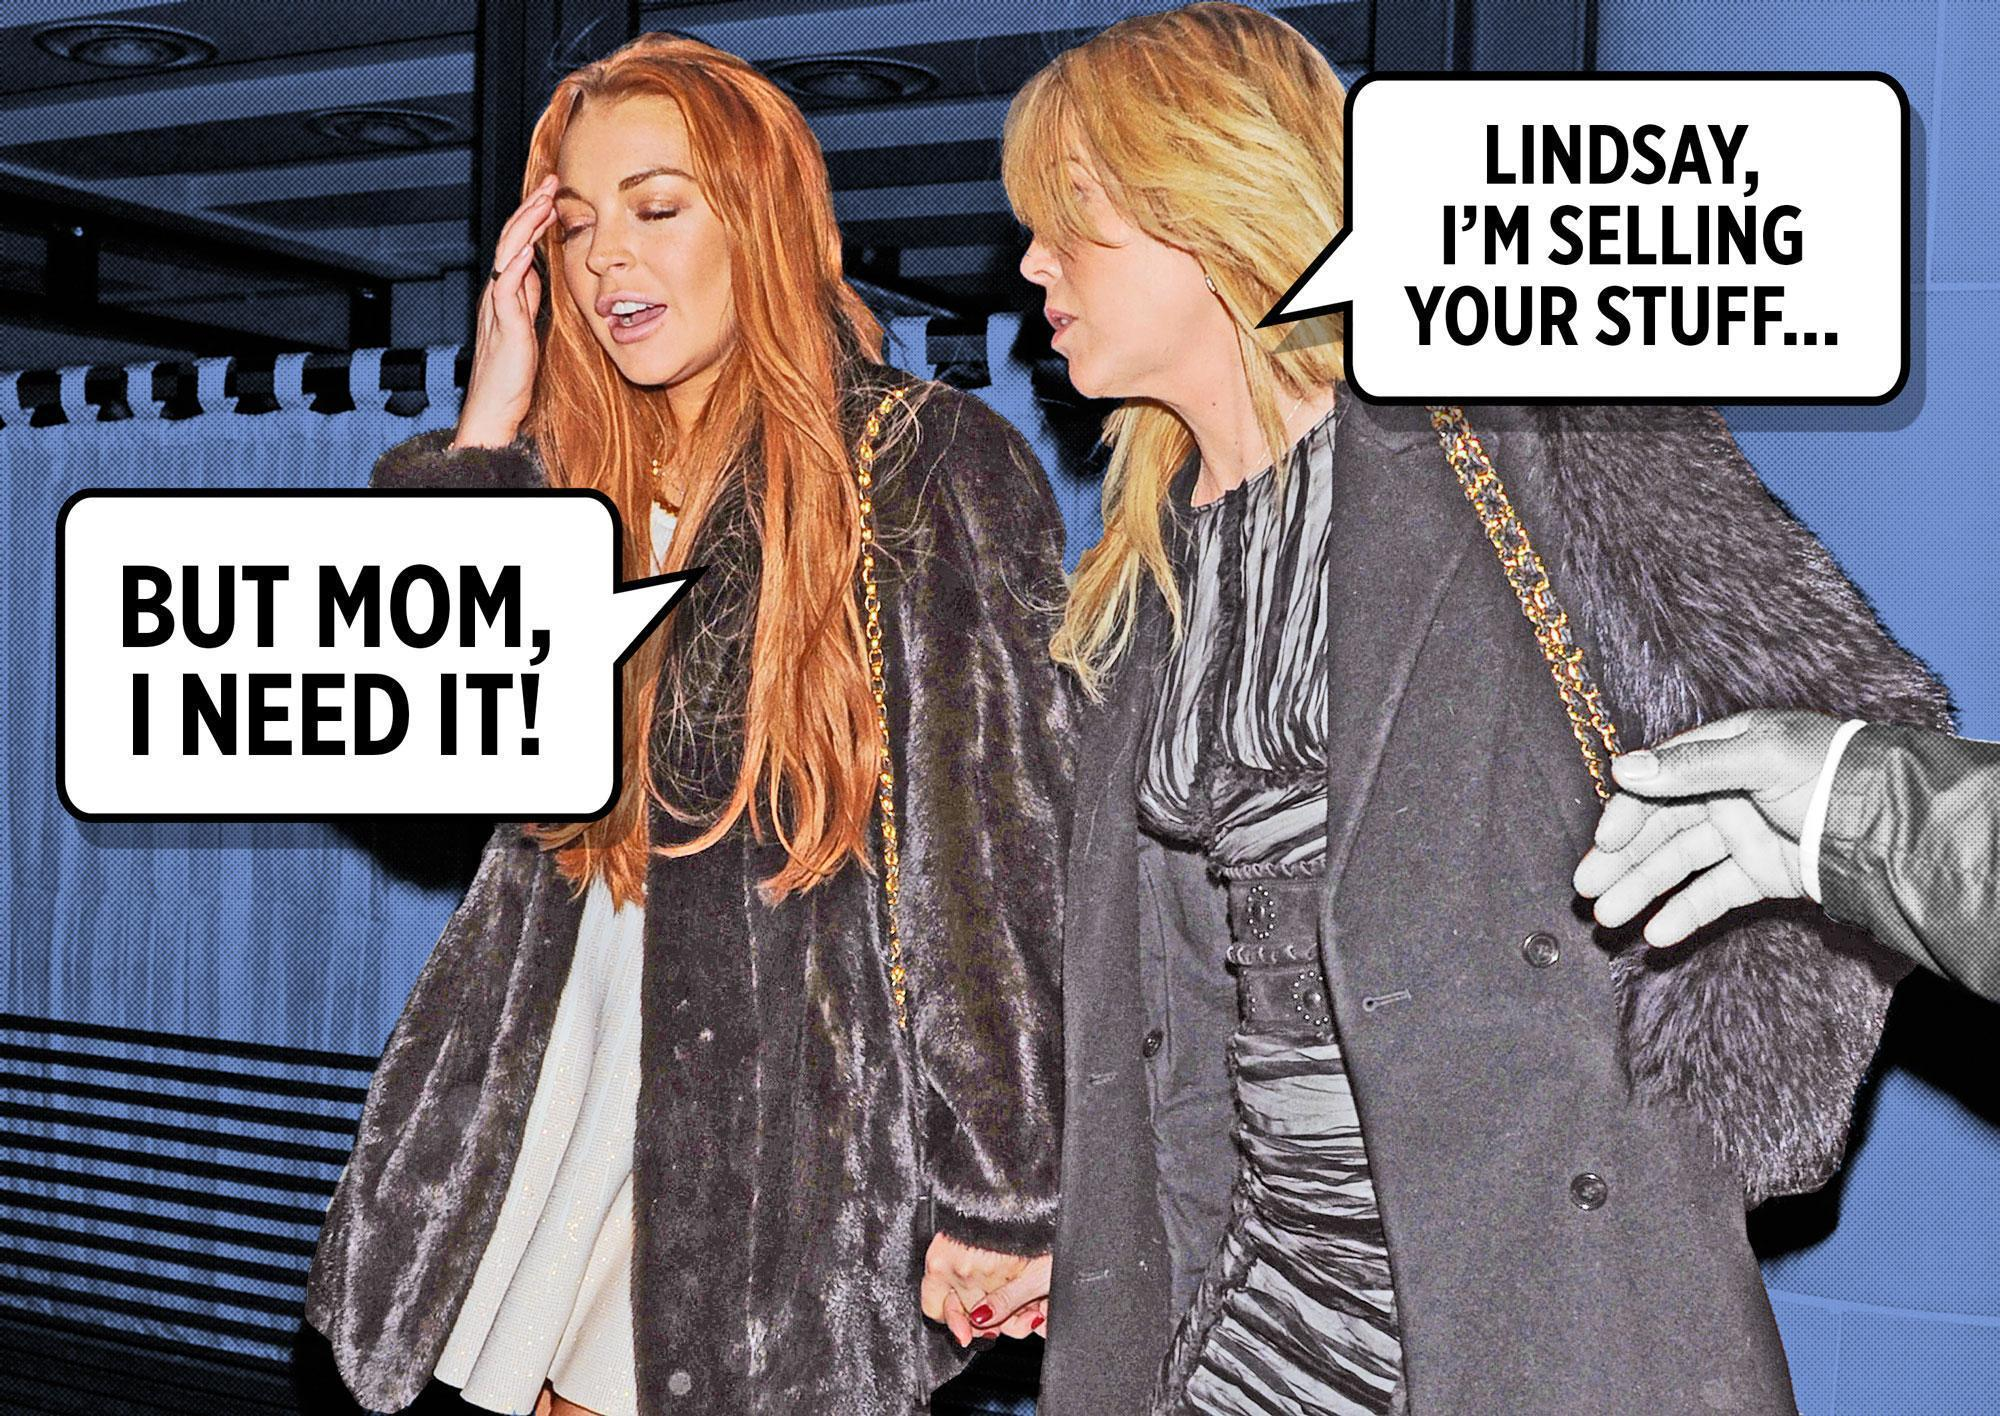 Lindsay Lohan's Mom Is Selling All of Her Stuff